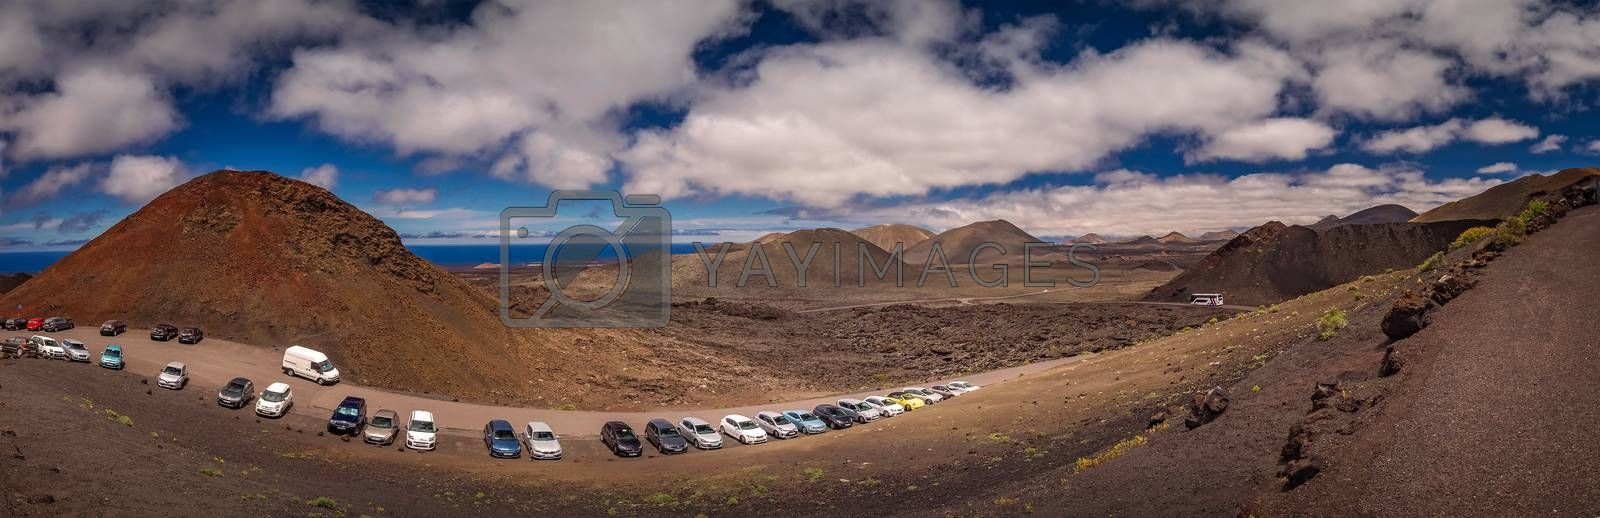 Car parked at the entrance to the Timanfaya National Park ( also called The Montanas del Fuego or Mountains of Fire ) in Lanzarote, Canary Islands, Spain. Picture taken 23 April 2016. April 2016.